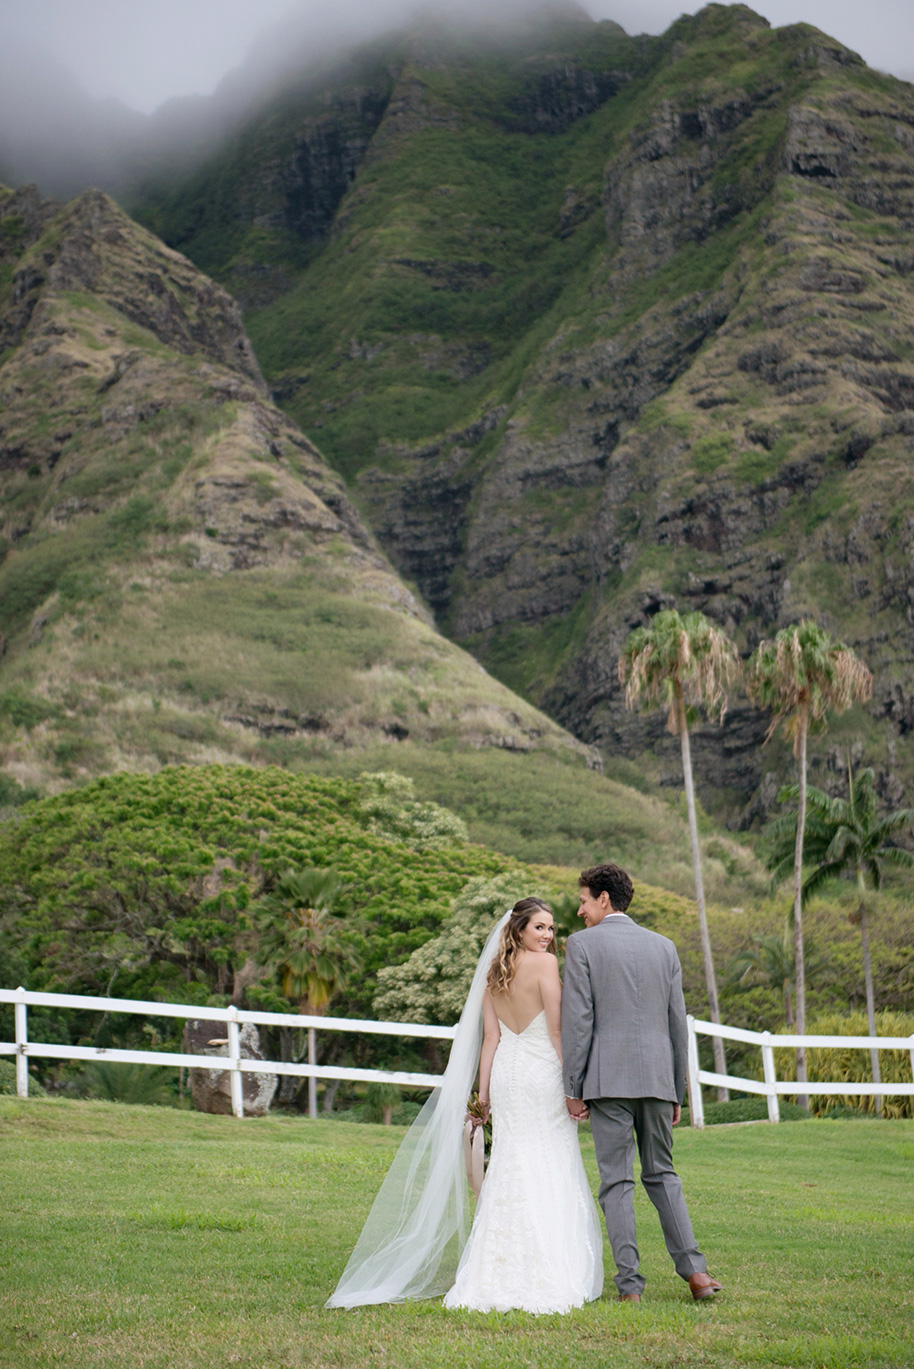 Kualoa-Ranch-Wedding-16.jpg